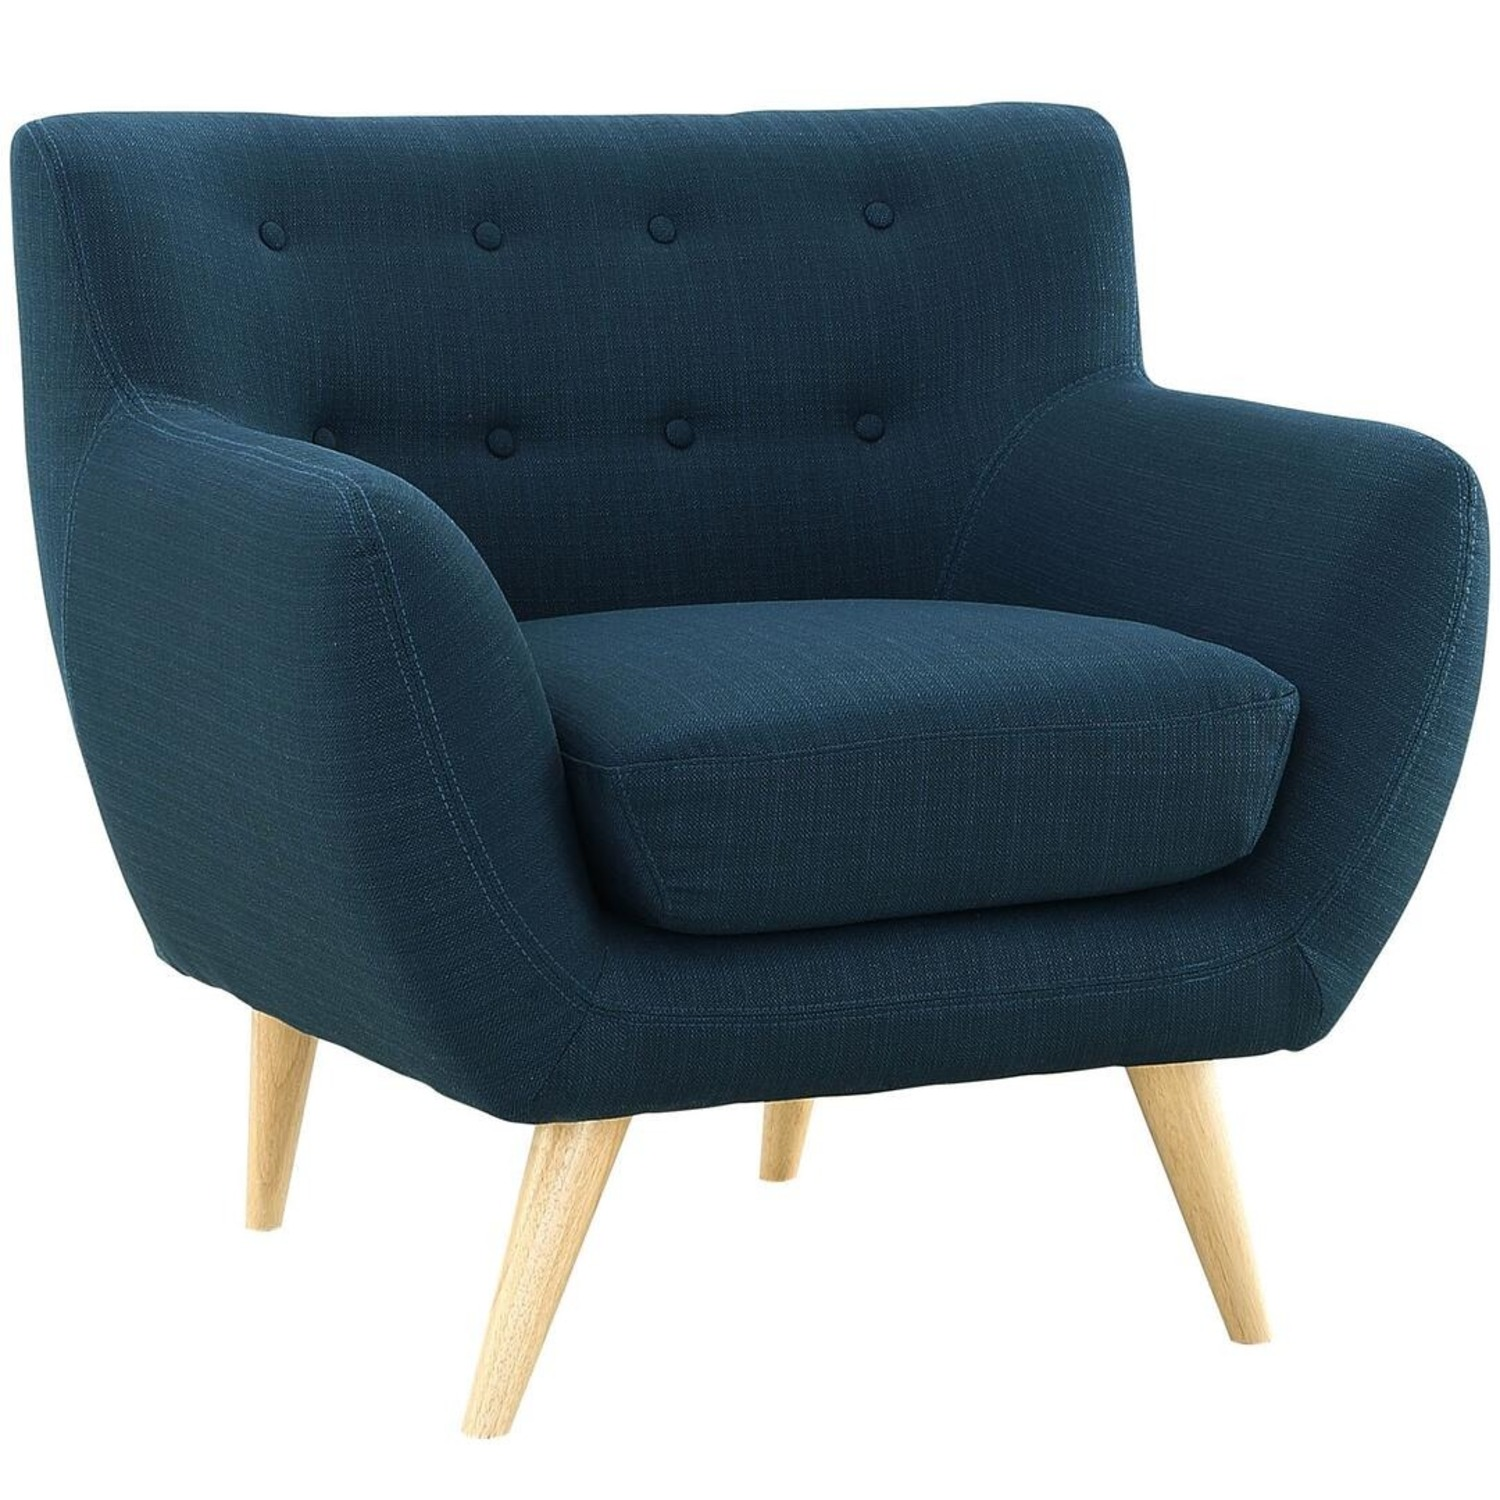 Armchair In Azure Upholstery W/ Natural Wood Legs - image-1